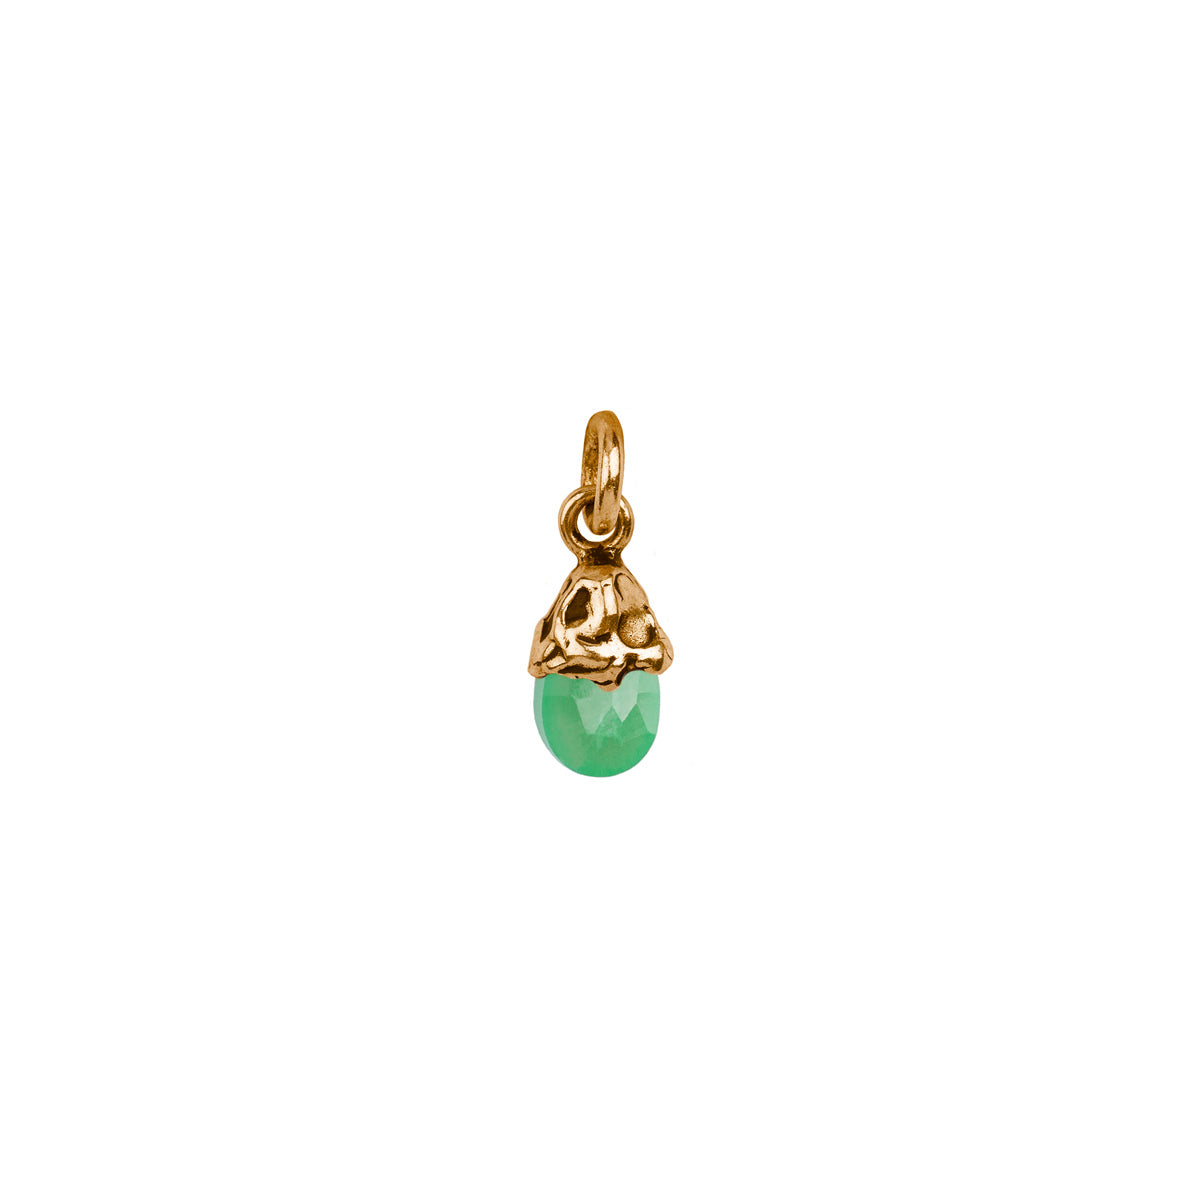 Healing Chrysoprase Capped Attraction Charm